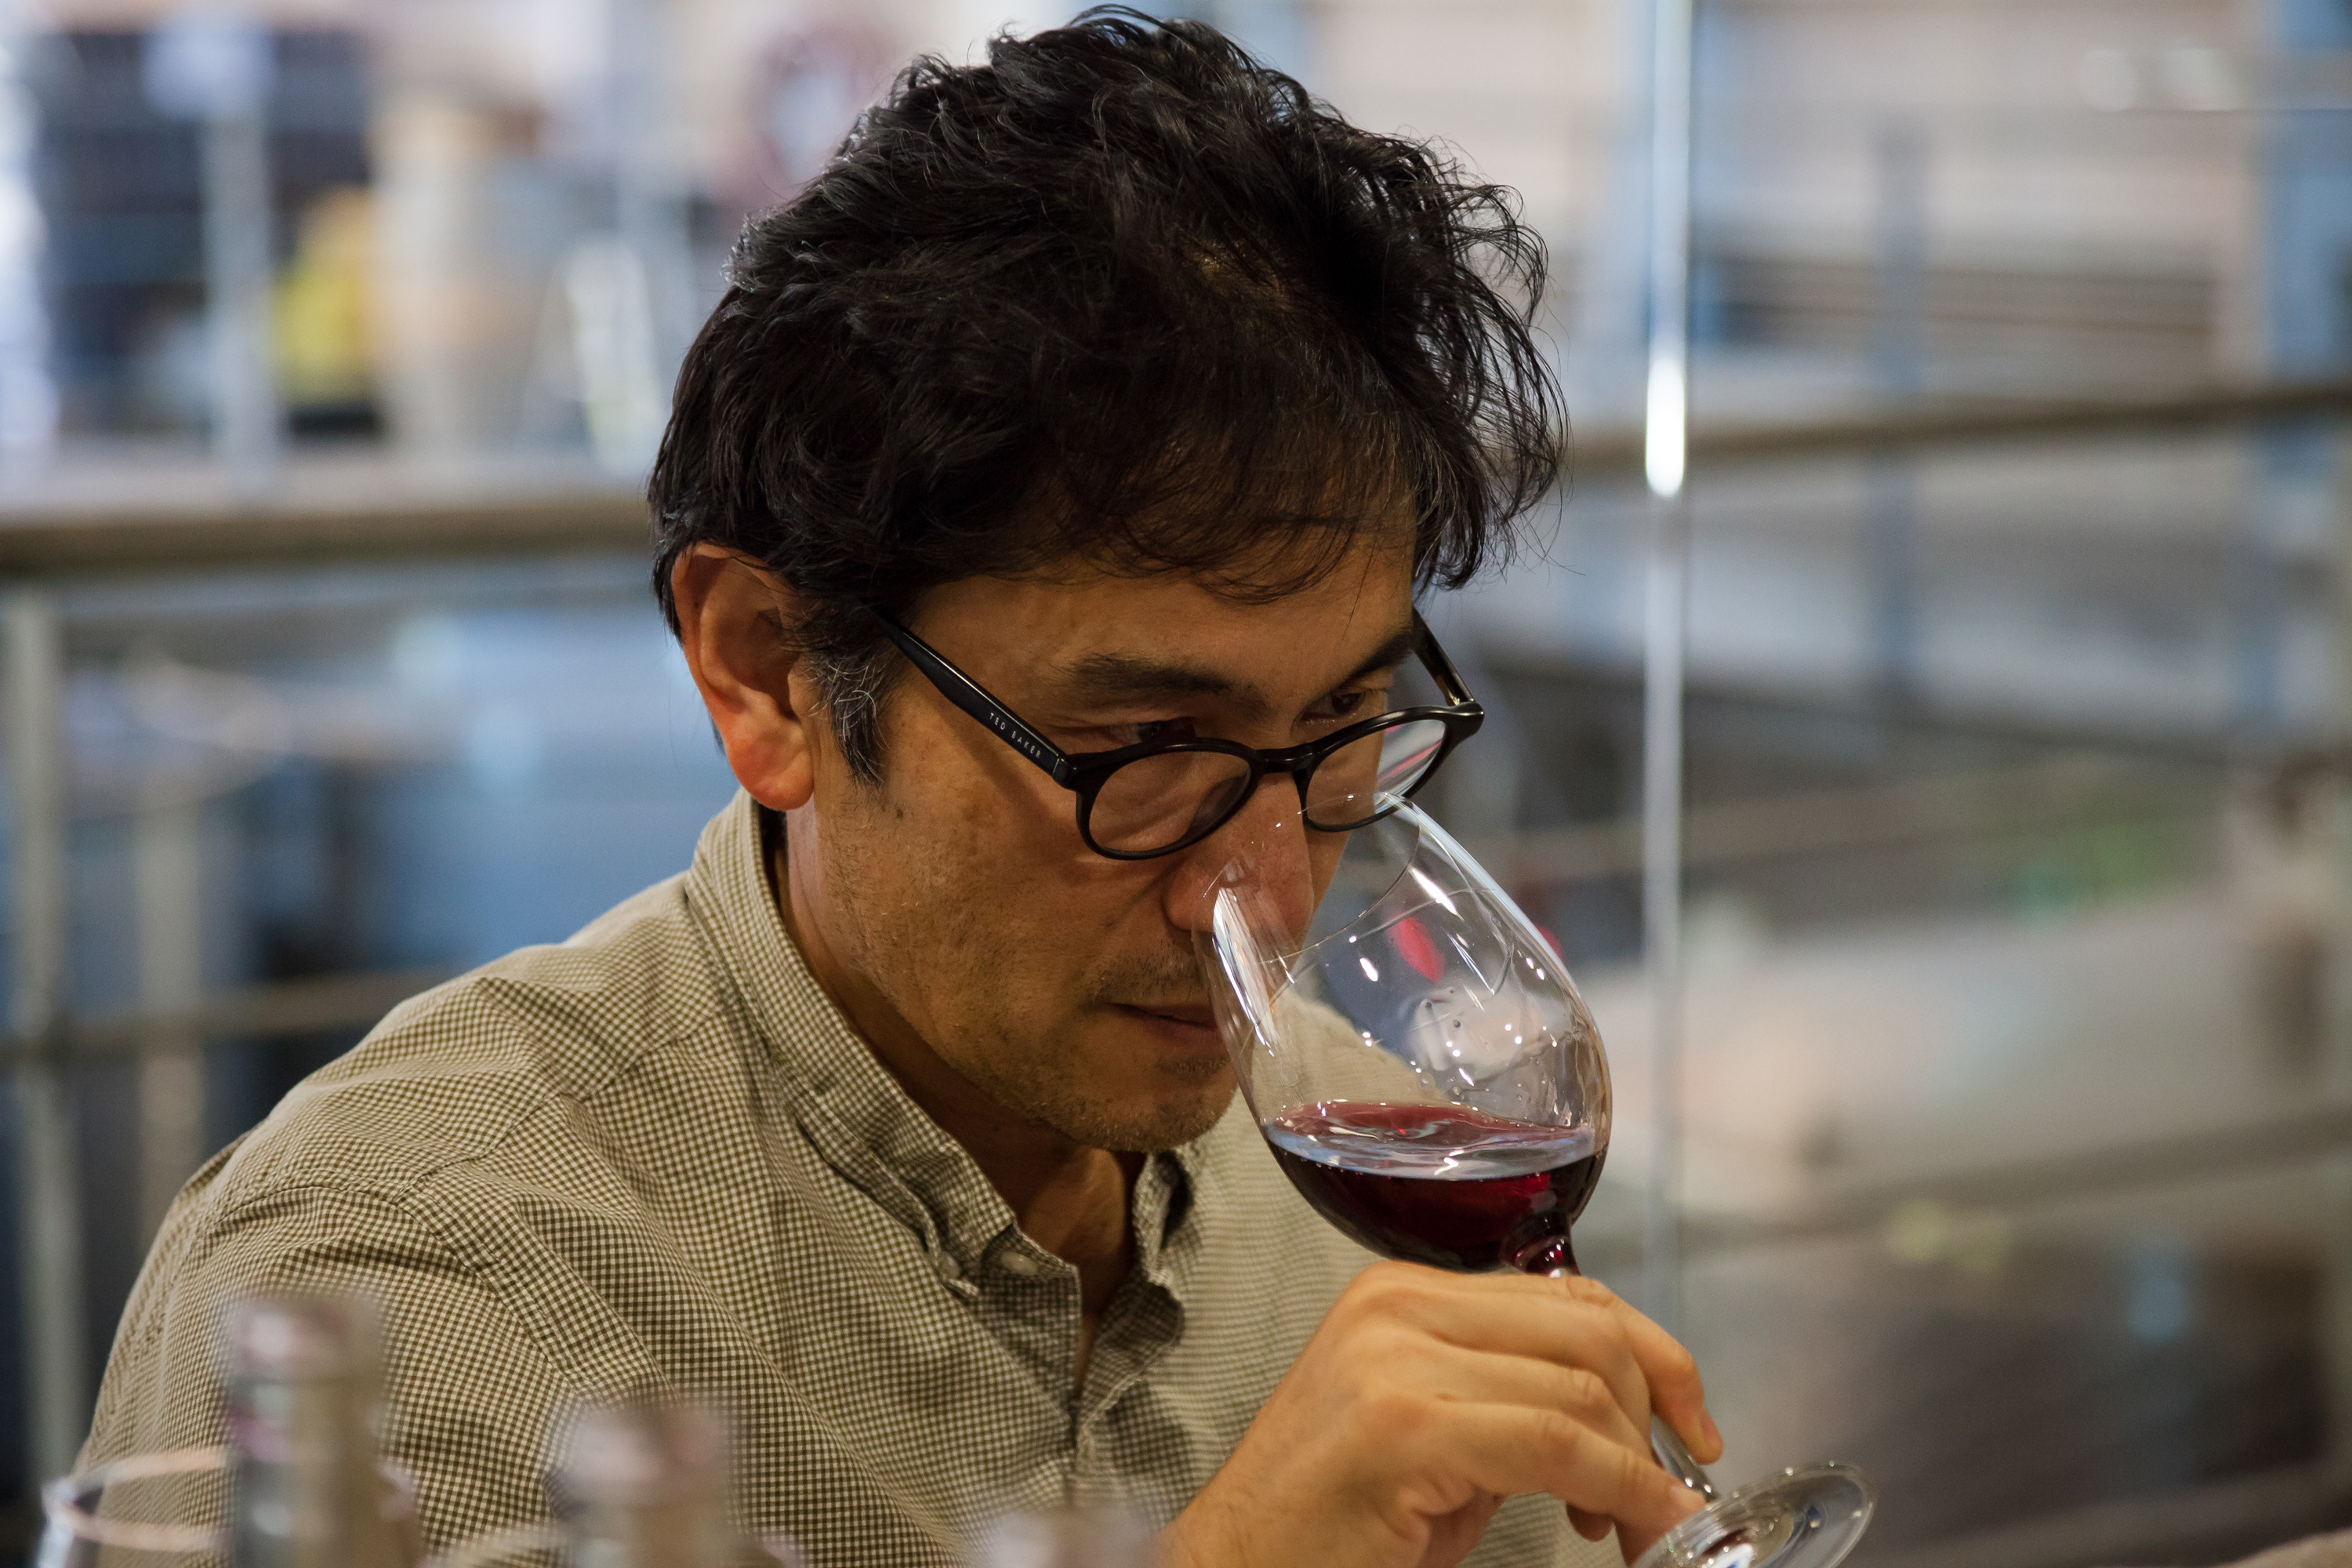 Byron searches for inner peace in the glass. Actually, he's tasting our Pinot Noir to decide the final blend for Alazan.